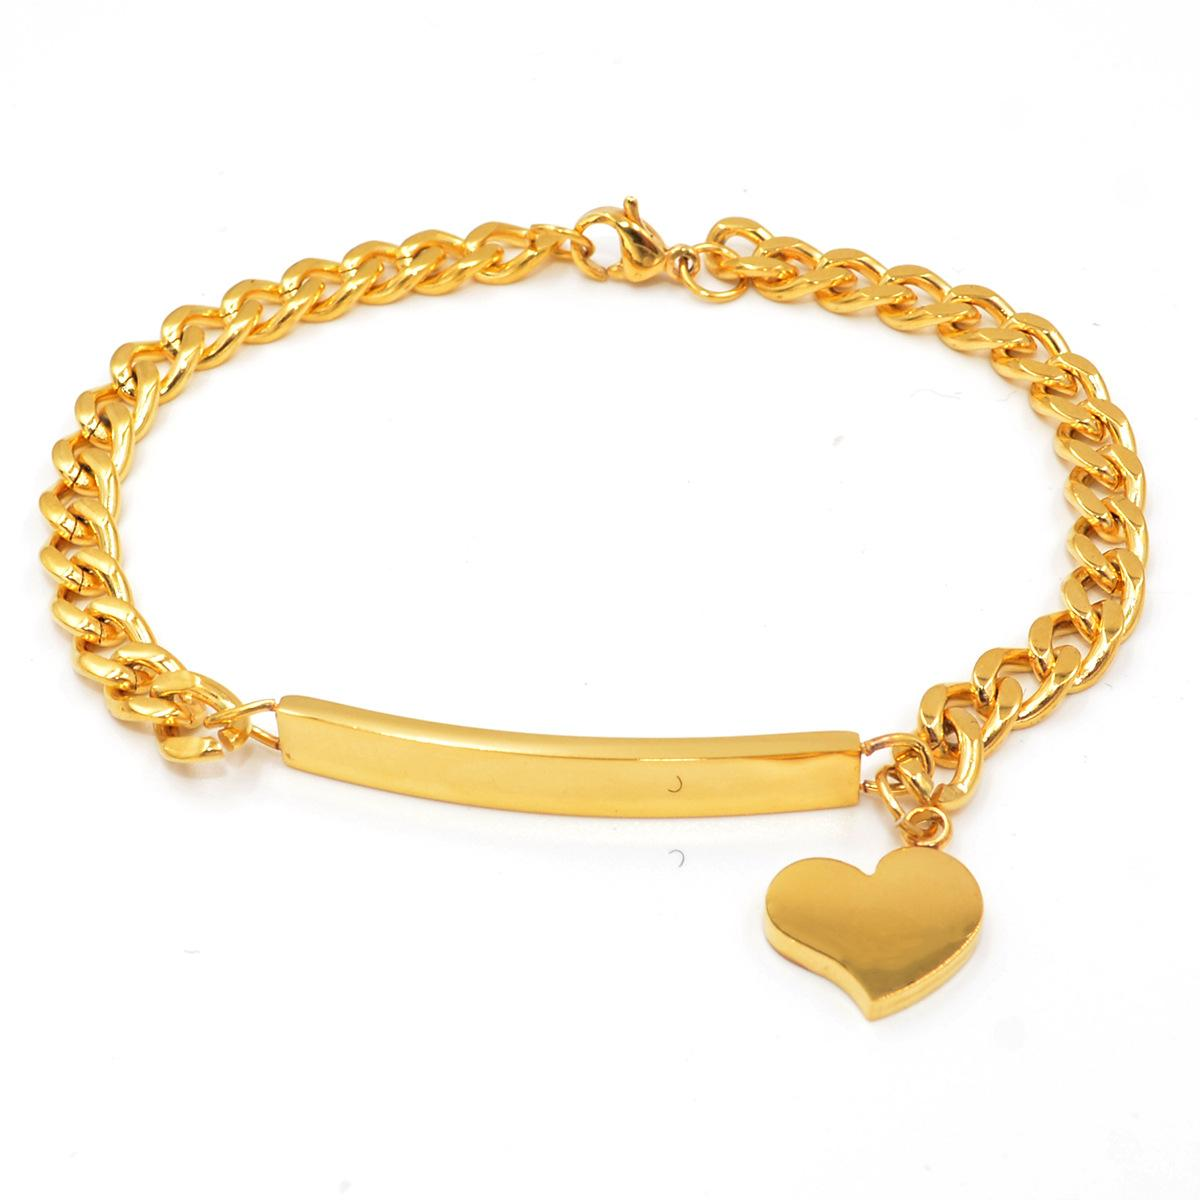 fancy bracelet gold tdw itm design brass plated rose tennis diamond